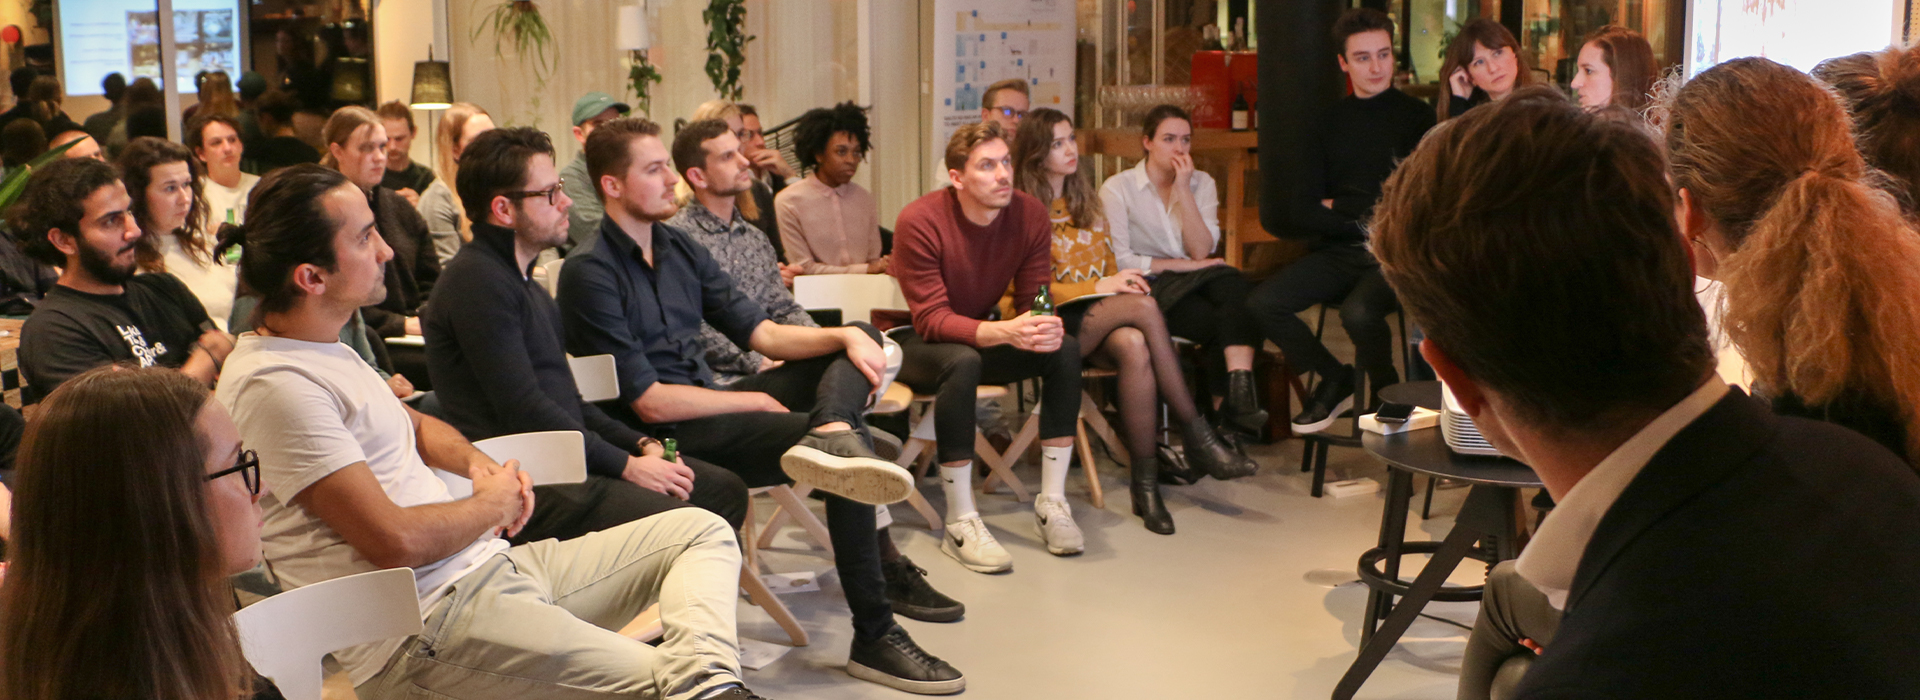 Coliving Meetup Audience at Zoku Amsterdam